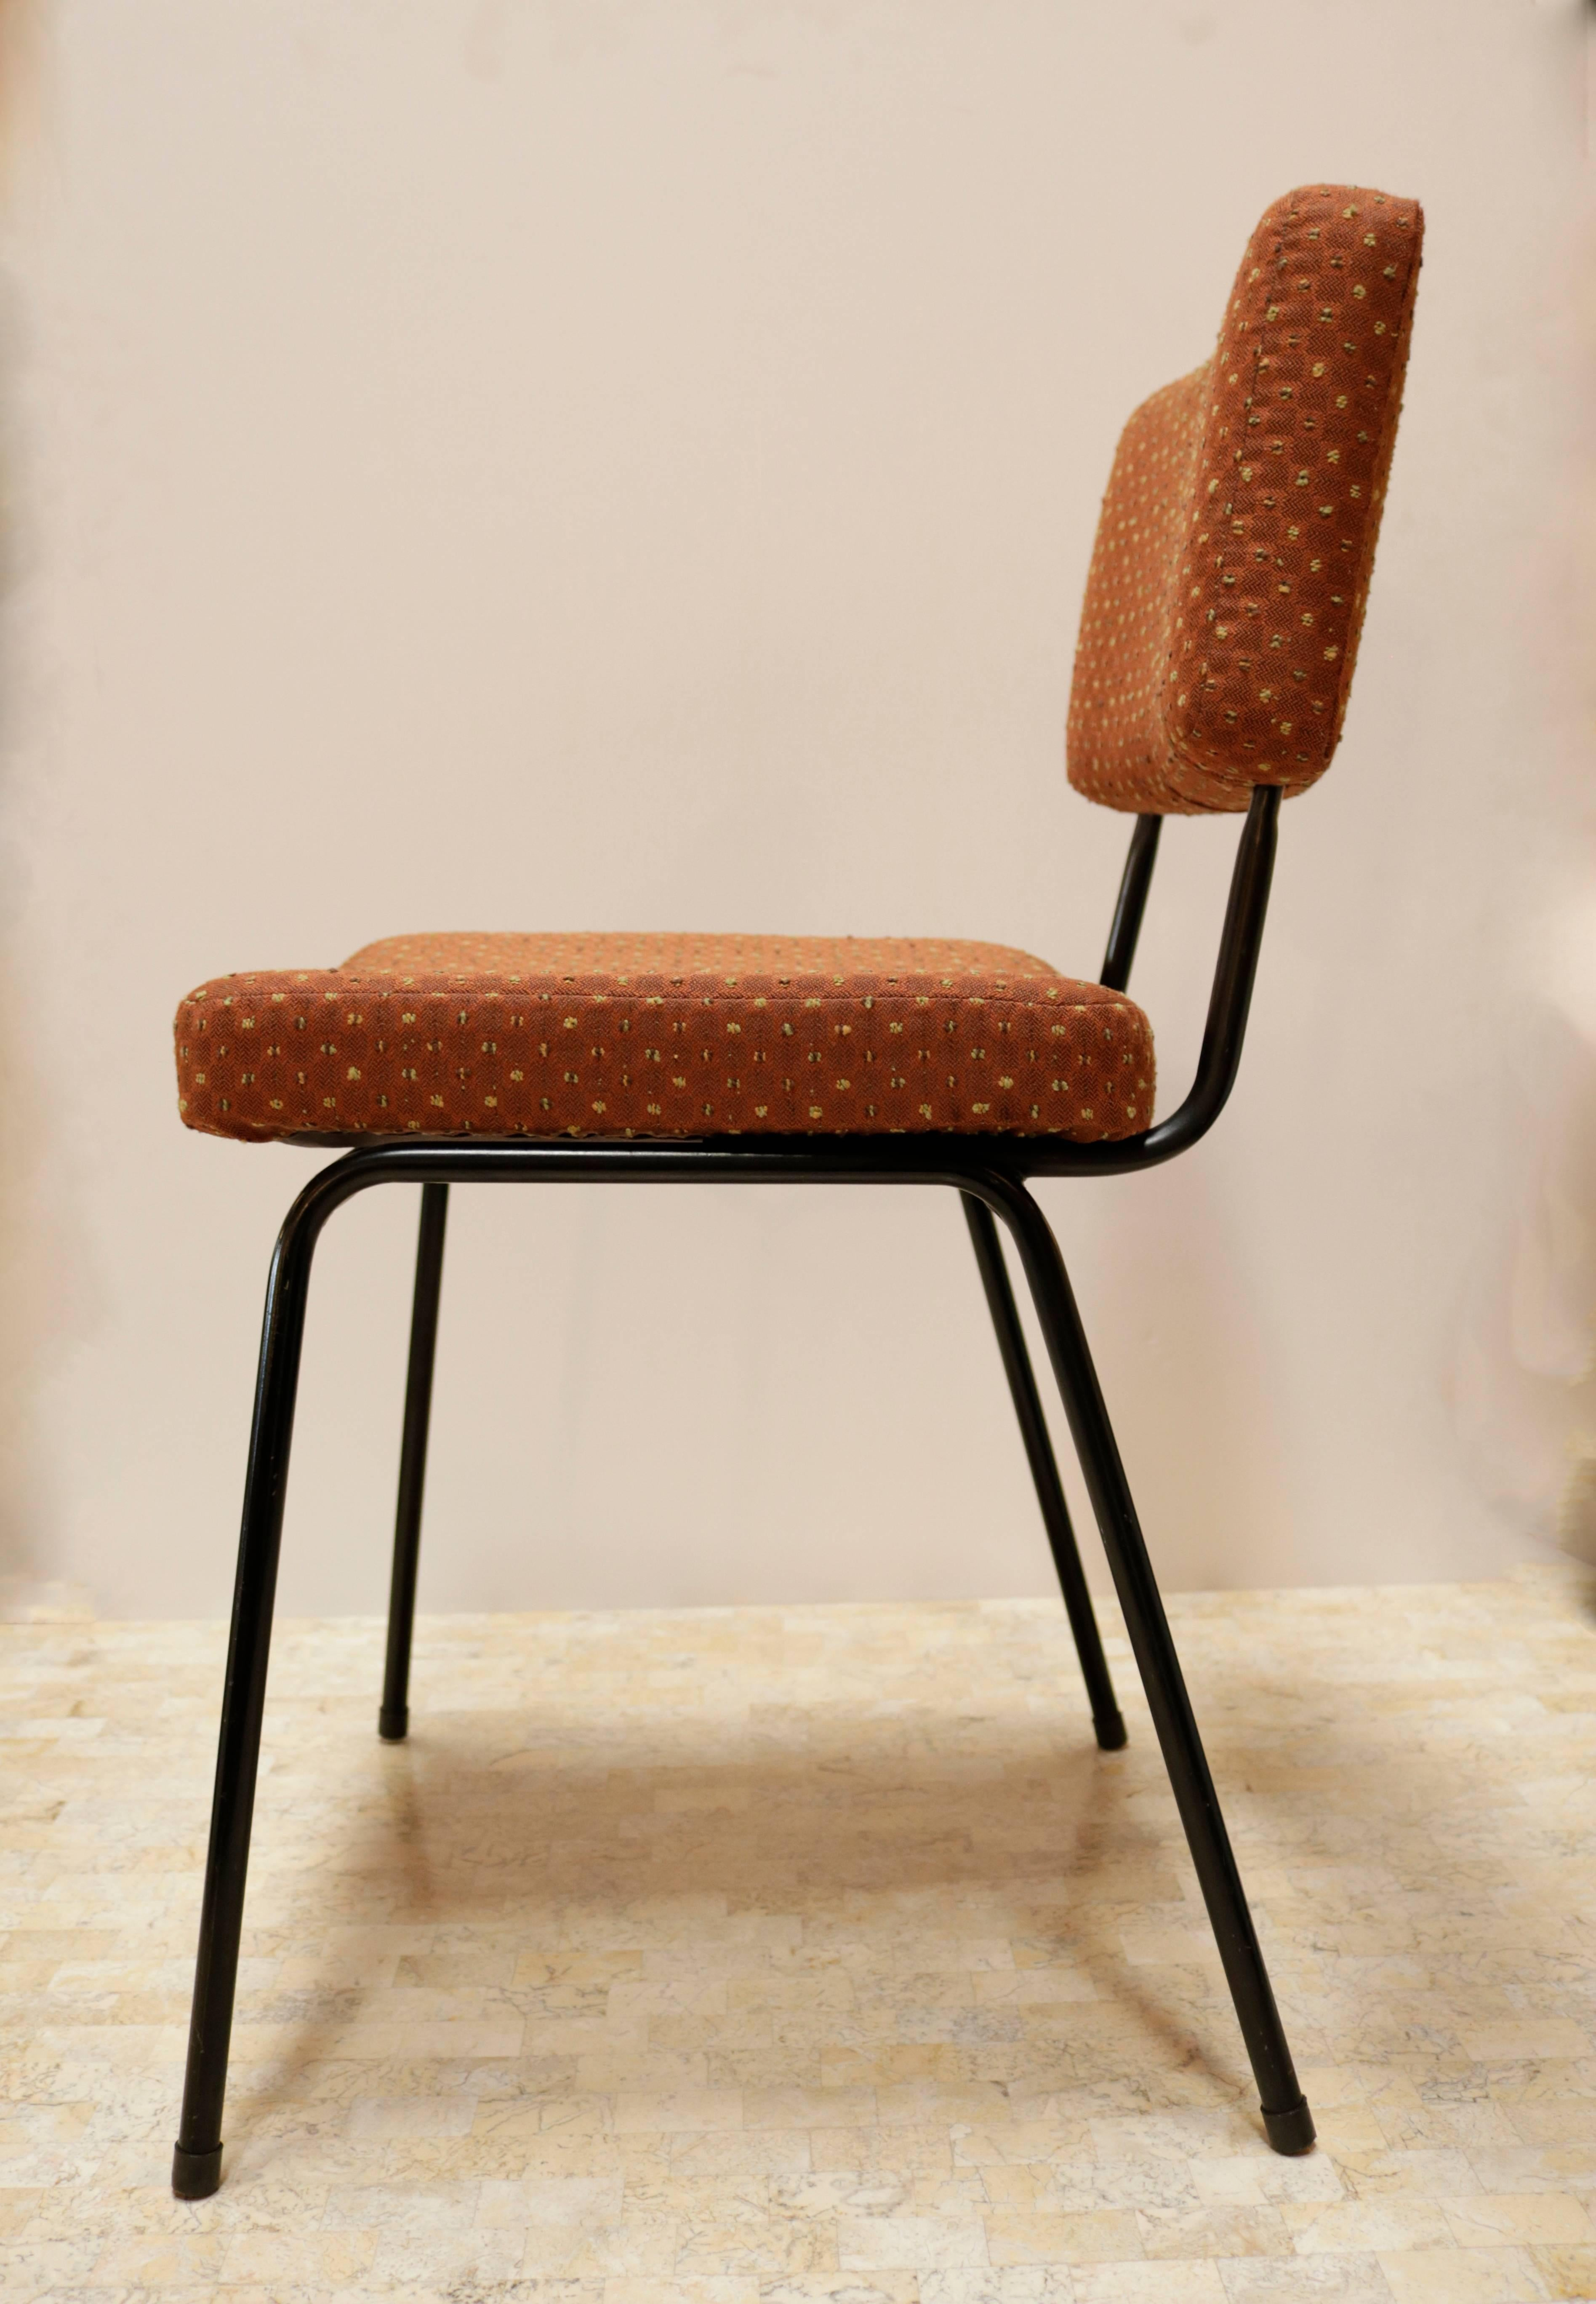 Salon En Pierre 1950s Upholstered Chair By Pierre Guariche For Airborne